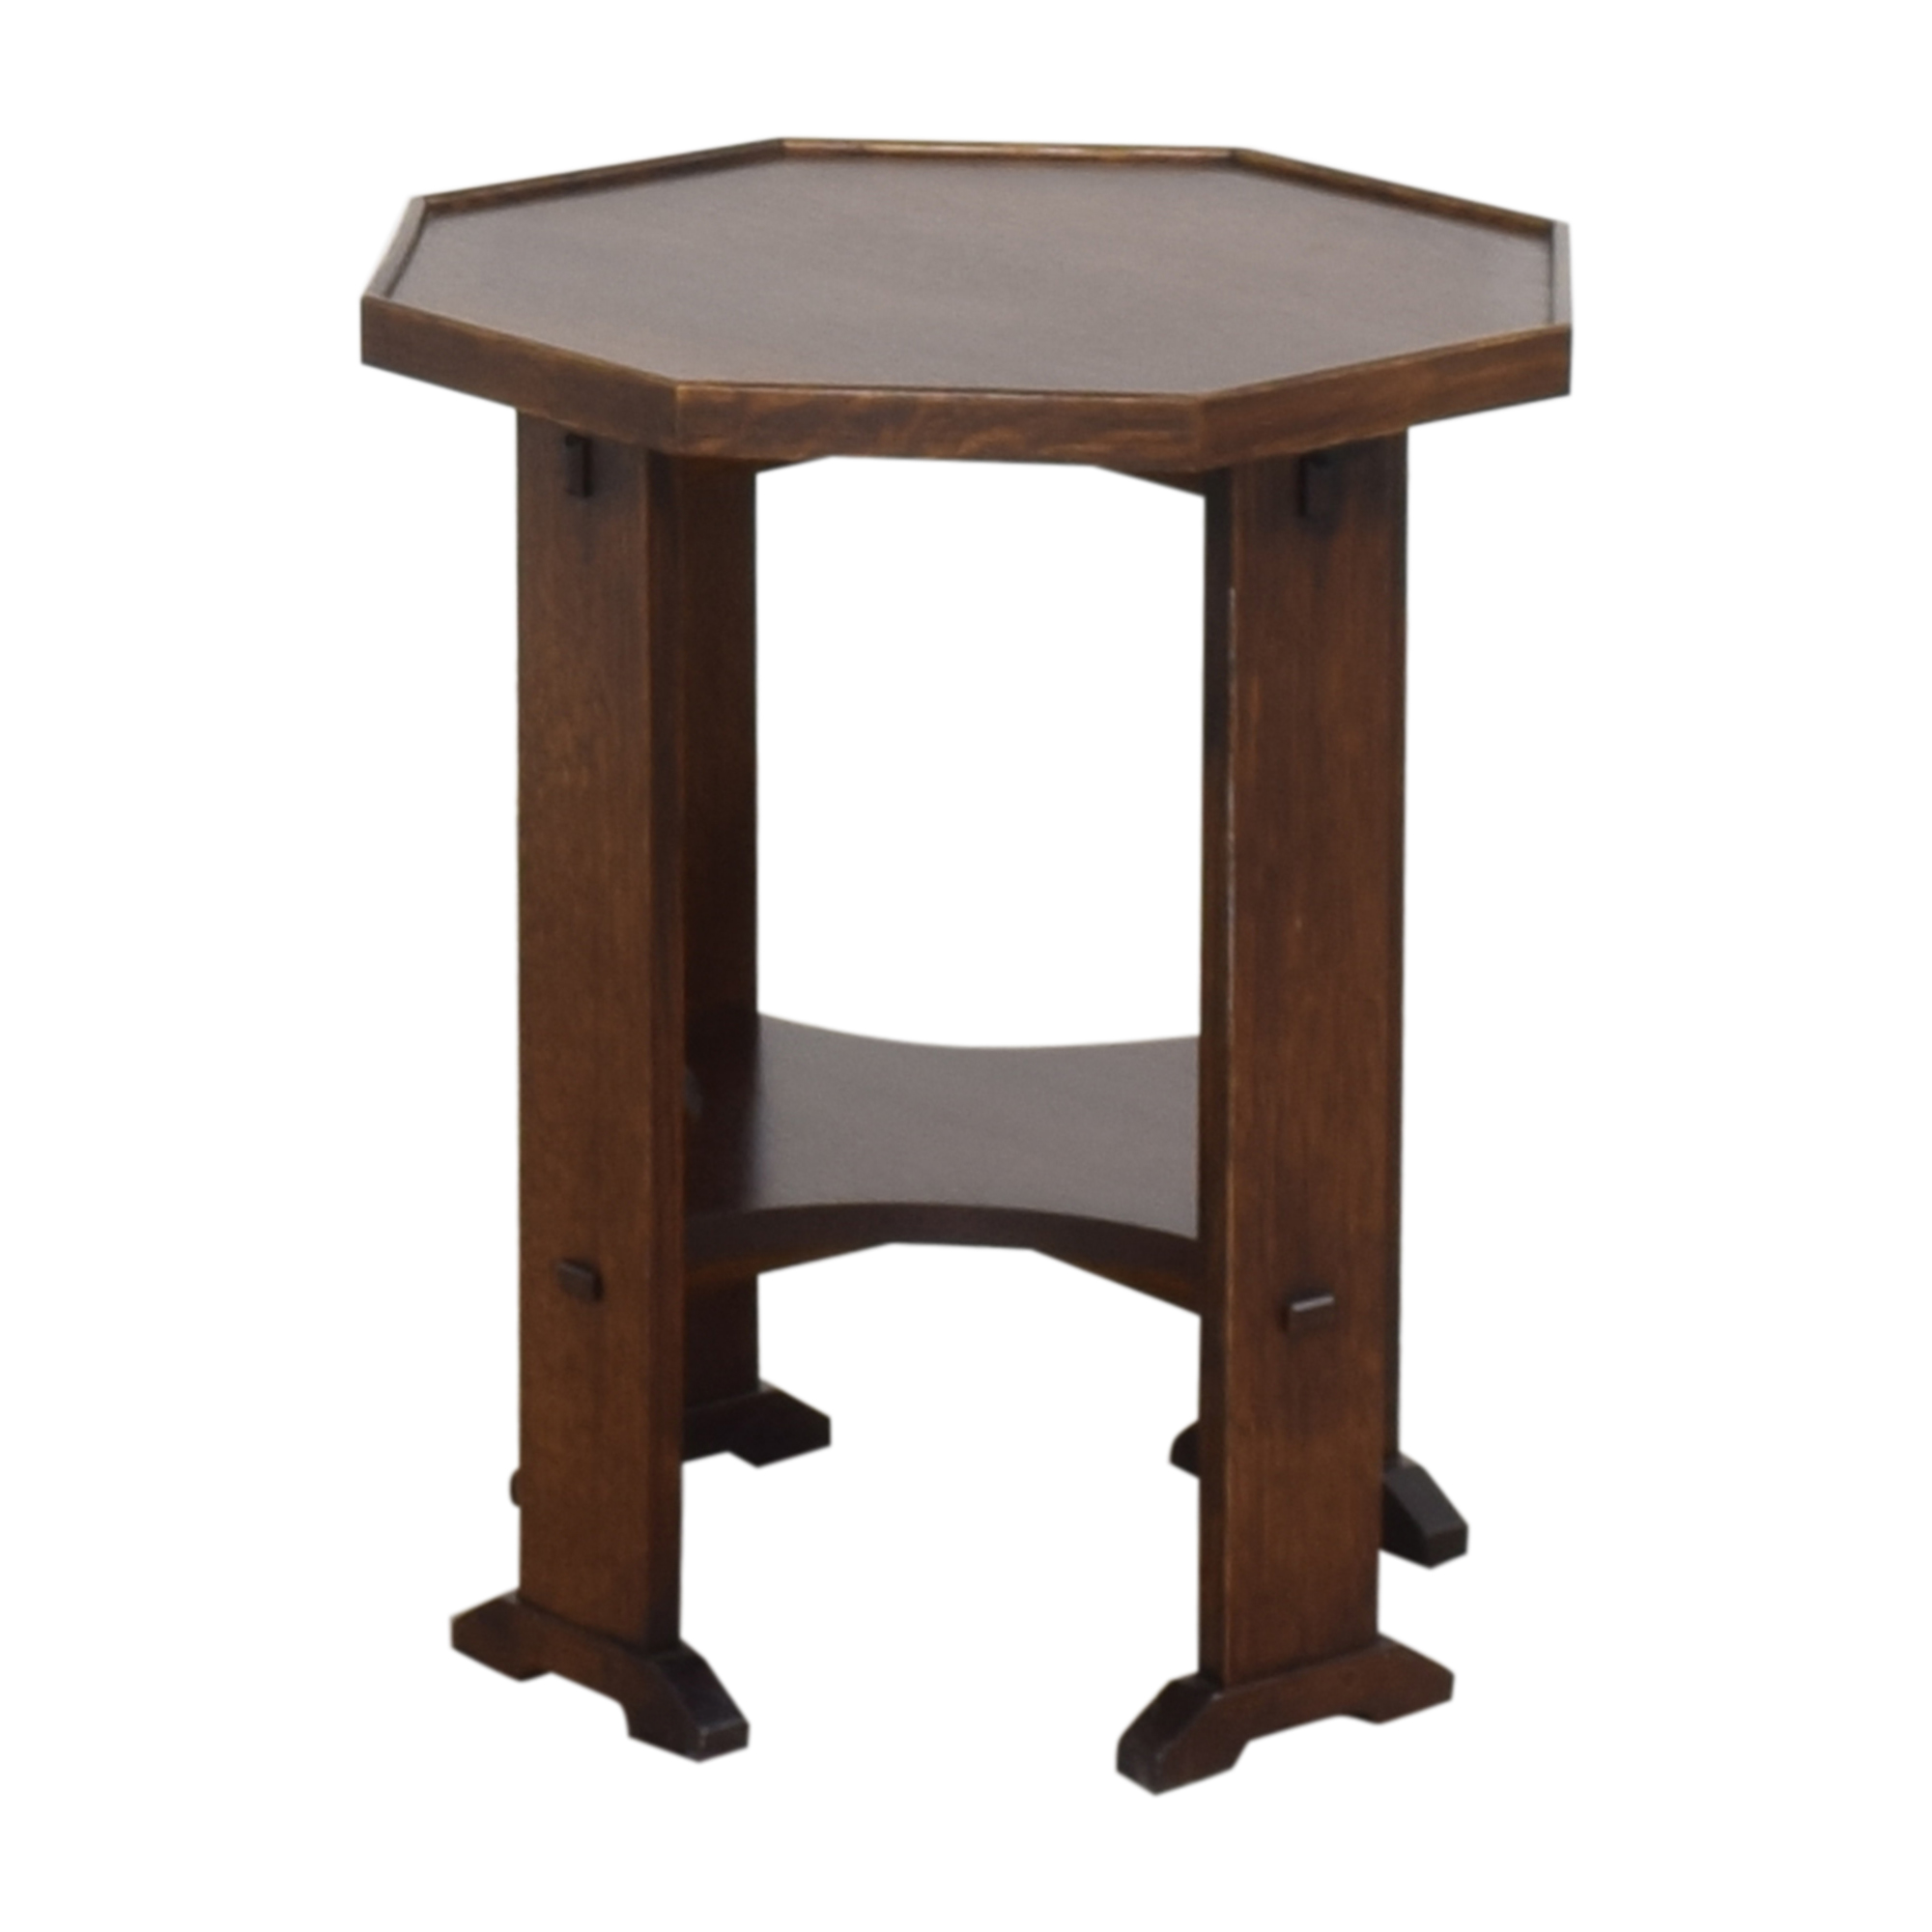 Stickley Furniture Stickley Furniture Hexagonal Side Table dimensions